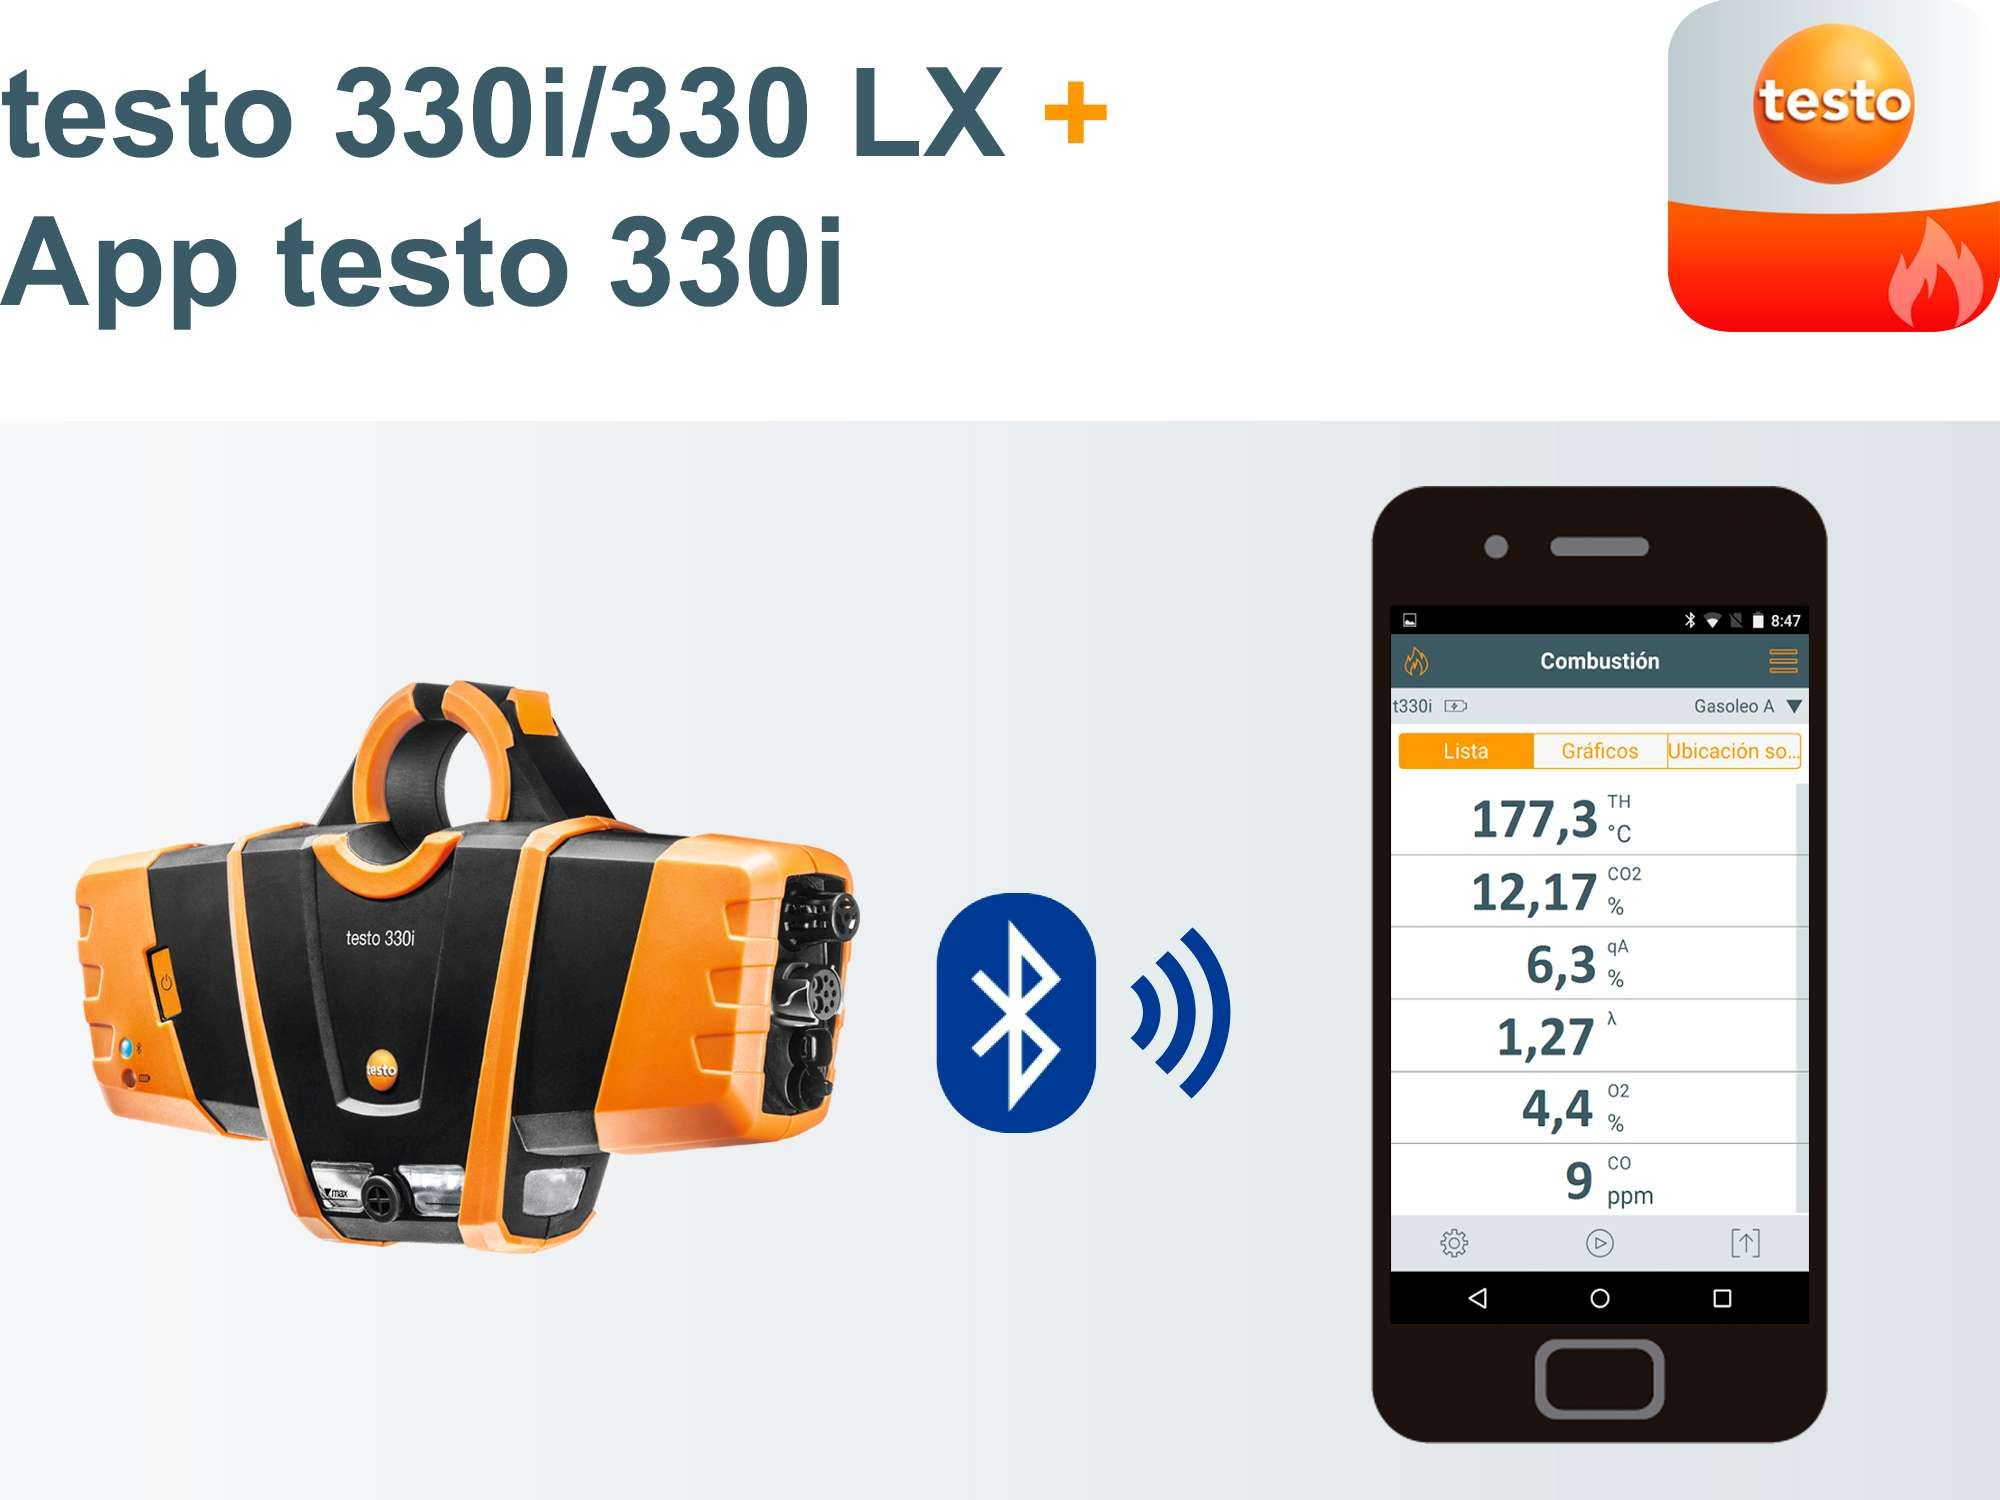 Analizador-combustion-testo-330i